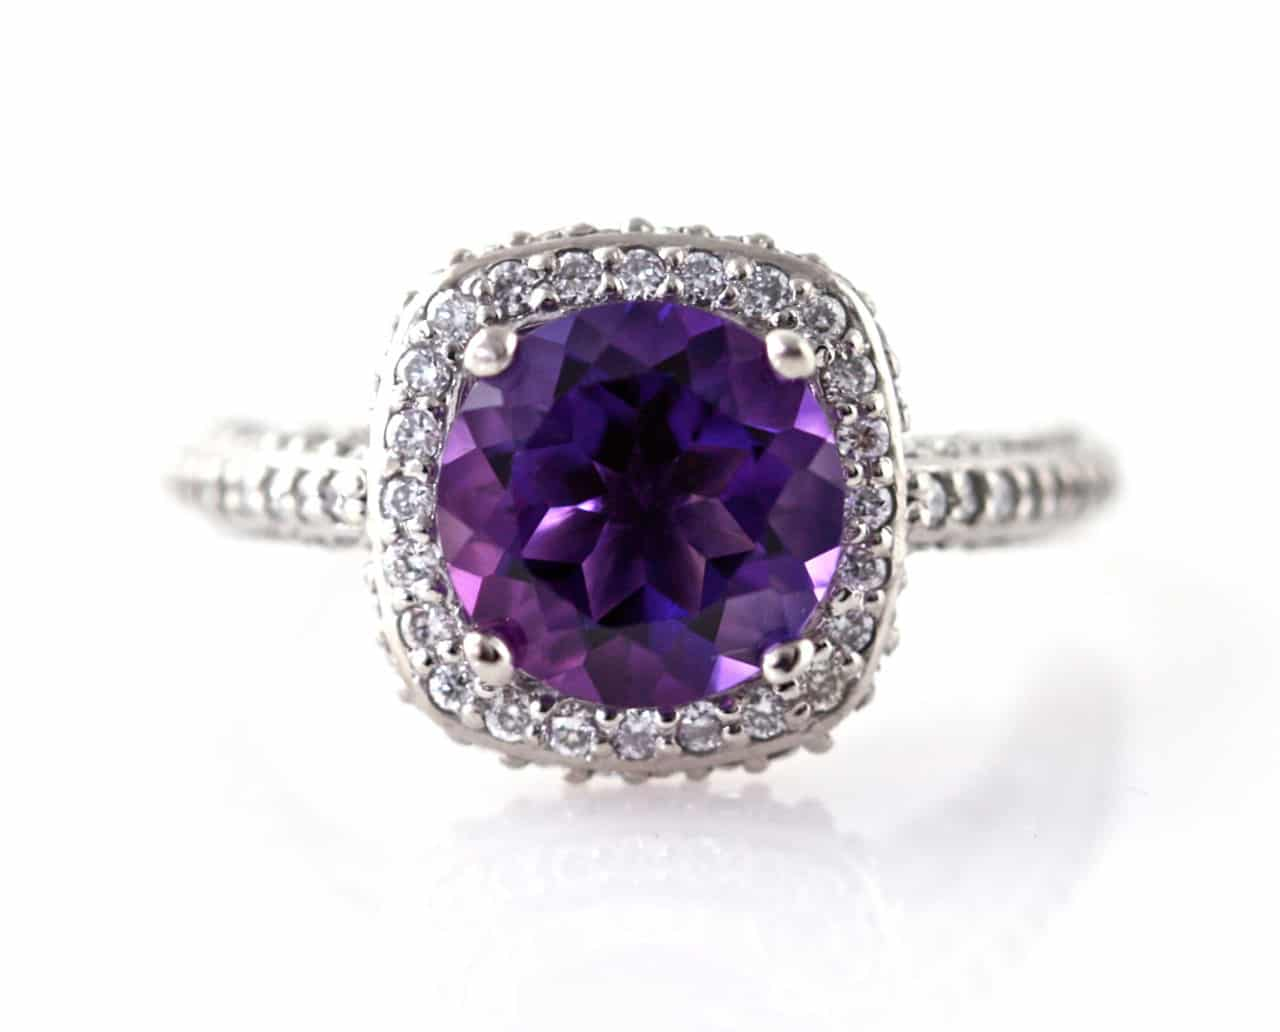 diamond masters princess ct p jewelry purple engagement product rings caravaggio platinum platdam art ring amethyst